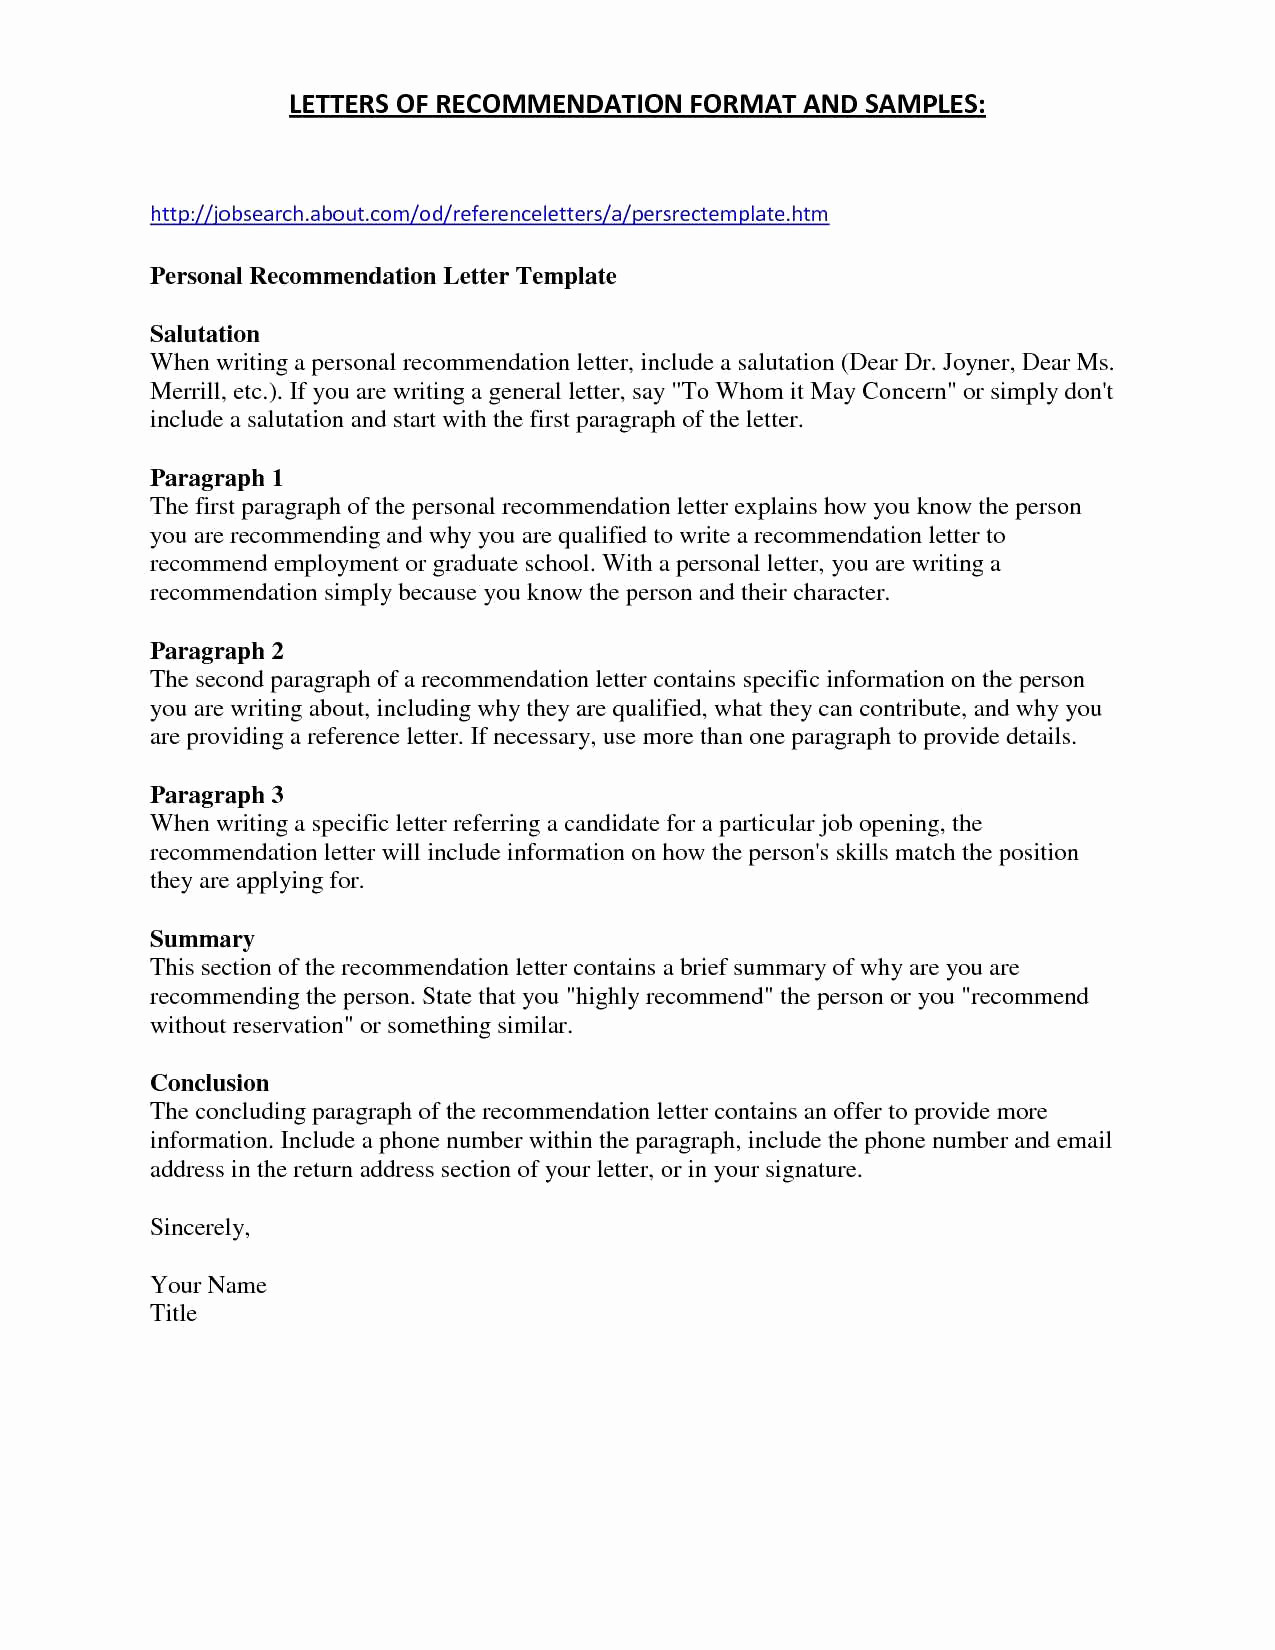 Marketing Cover Letter Template - Marketing Cover Letter Sample Beautiful Examples Marketing Cover